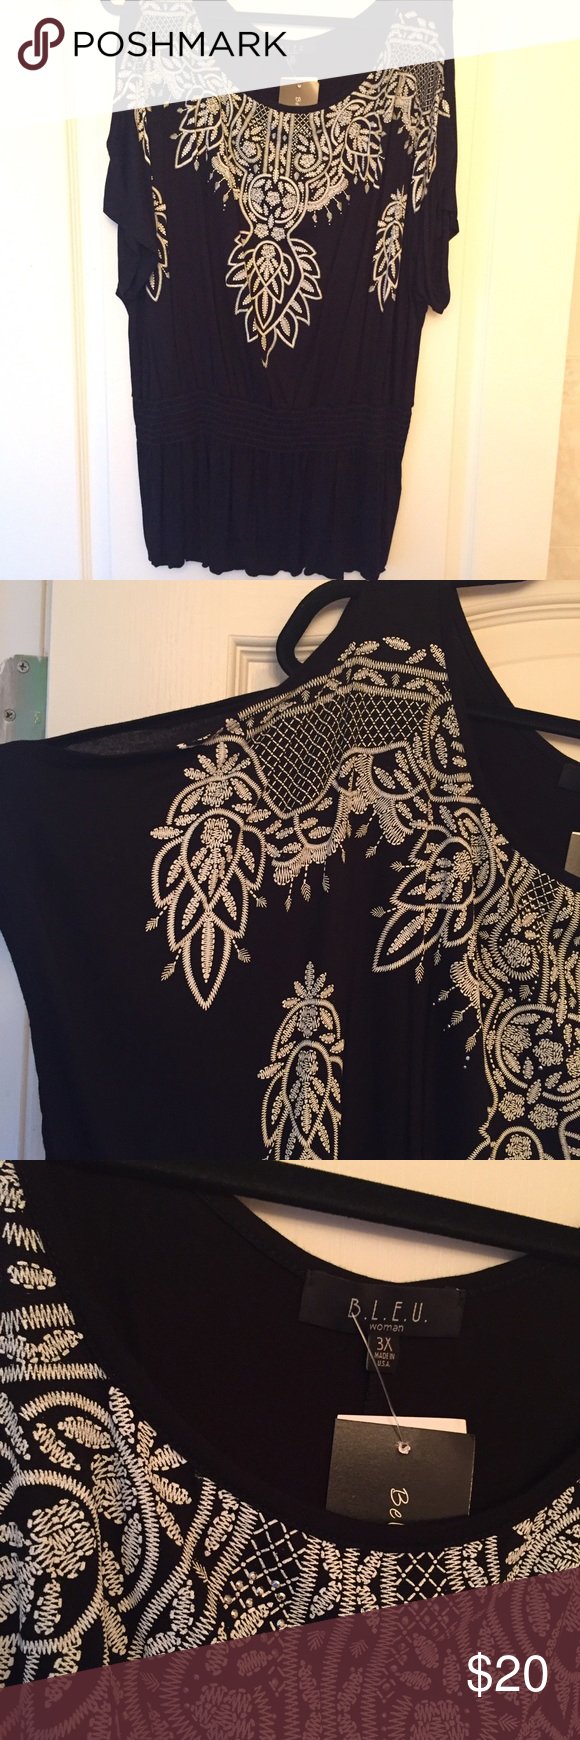 Black & white embroidered top Plus size 3X Brand-new with tags! Black and white embroidered top with cut out sleeves plus Size 3X Tops Blouses